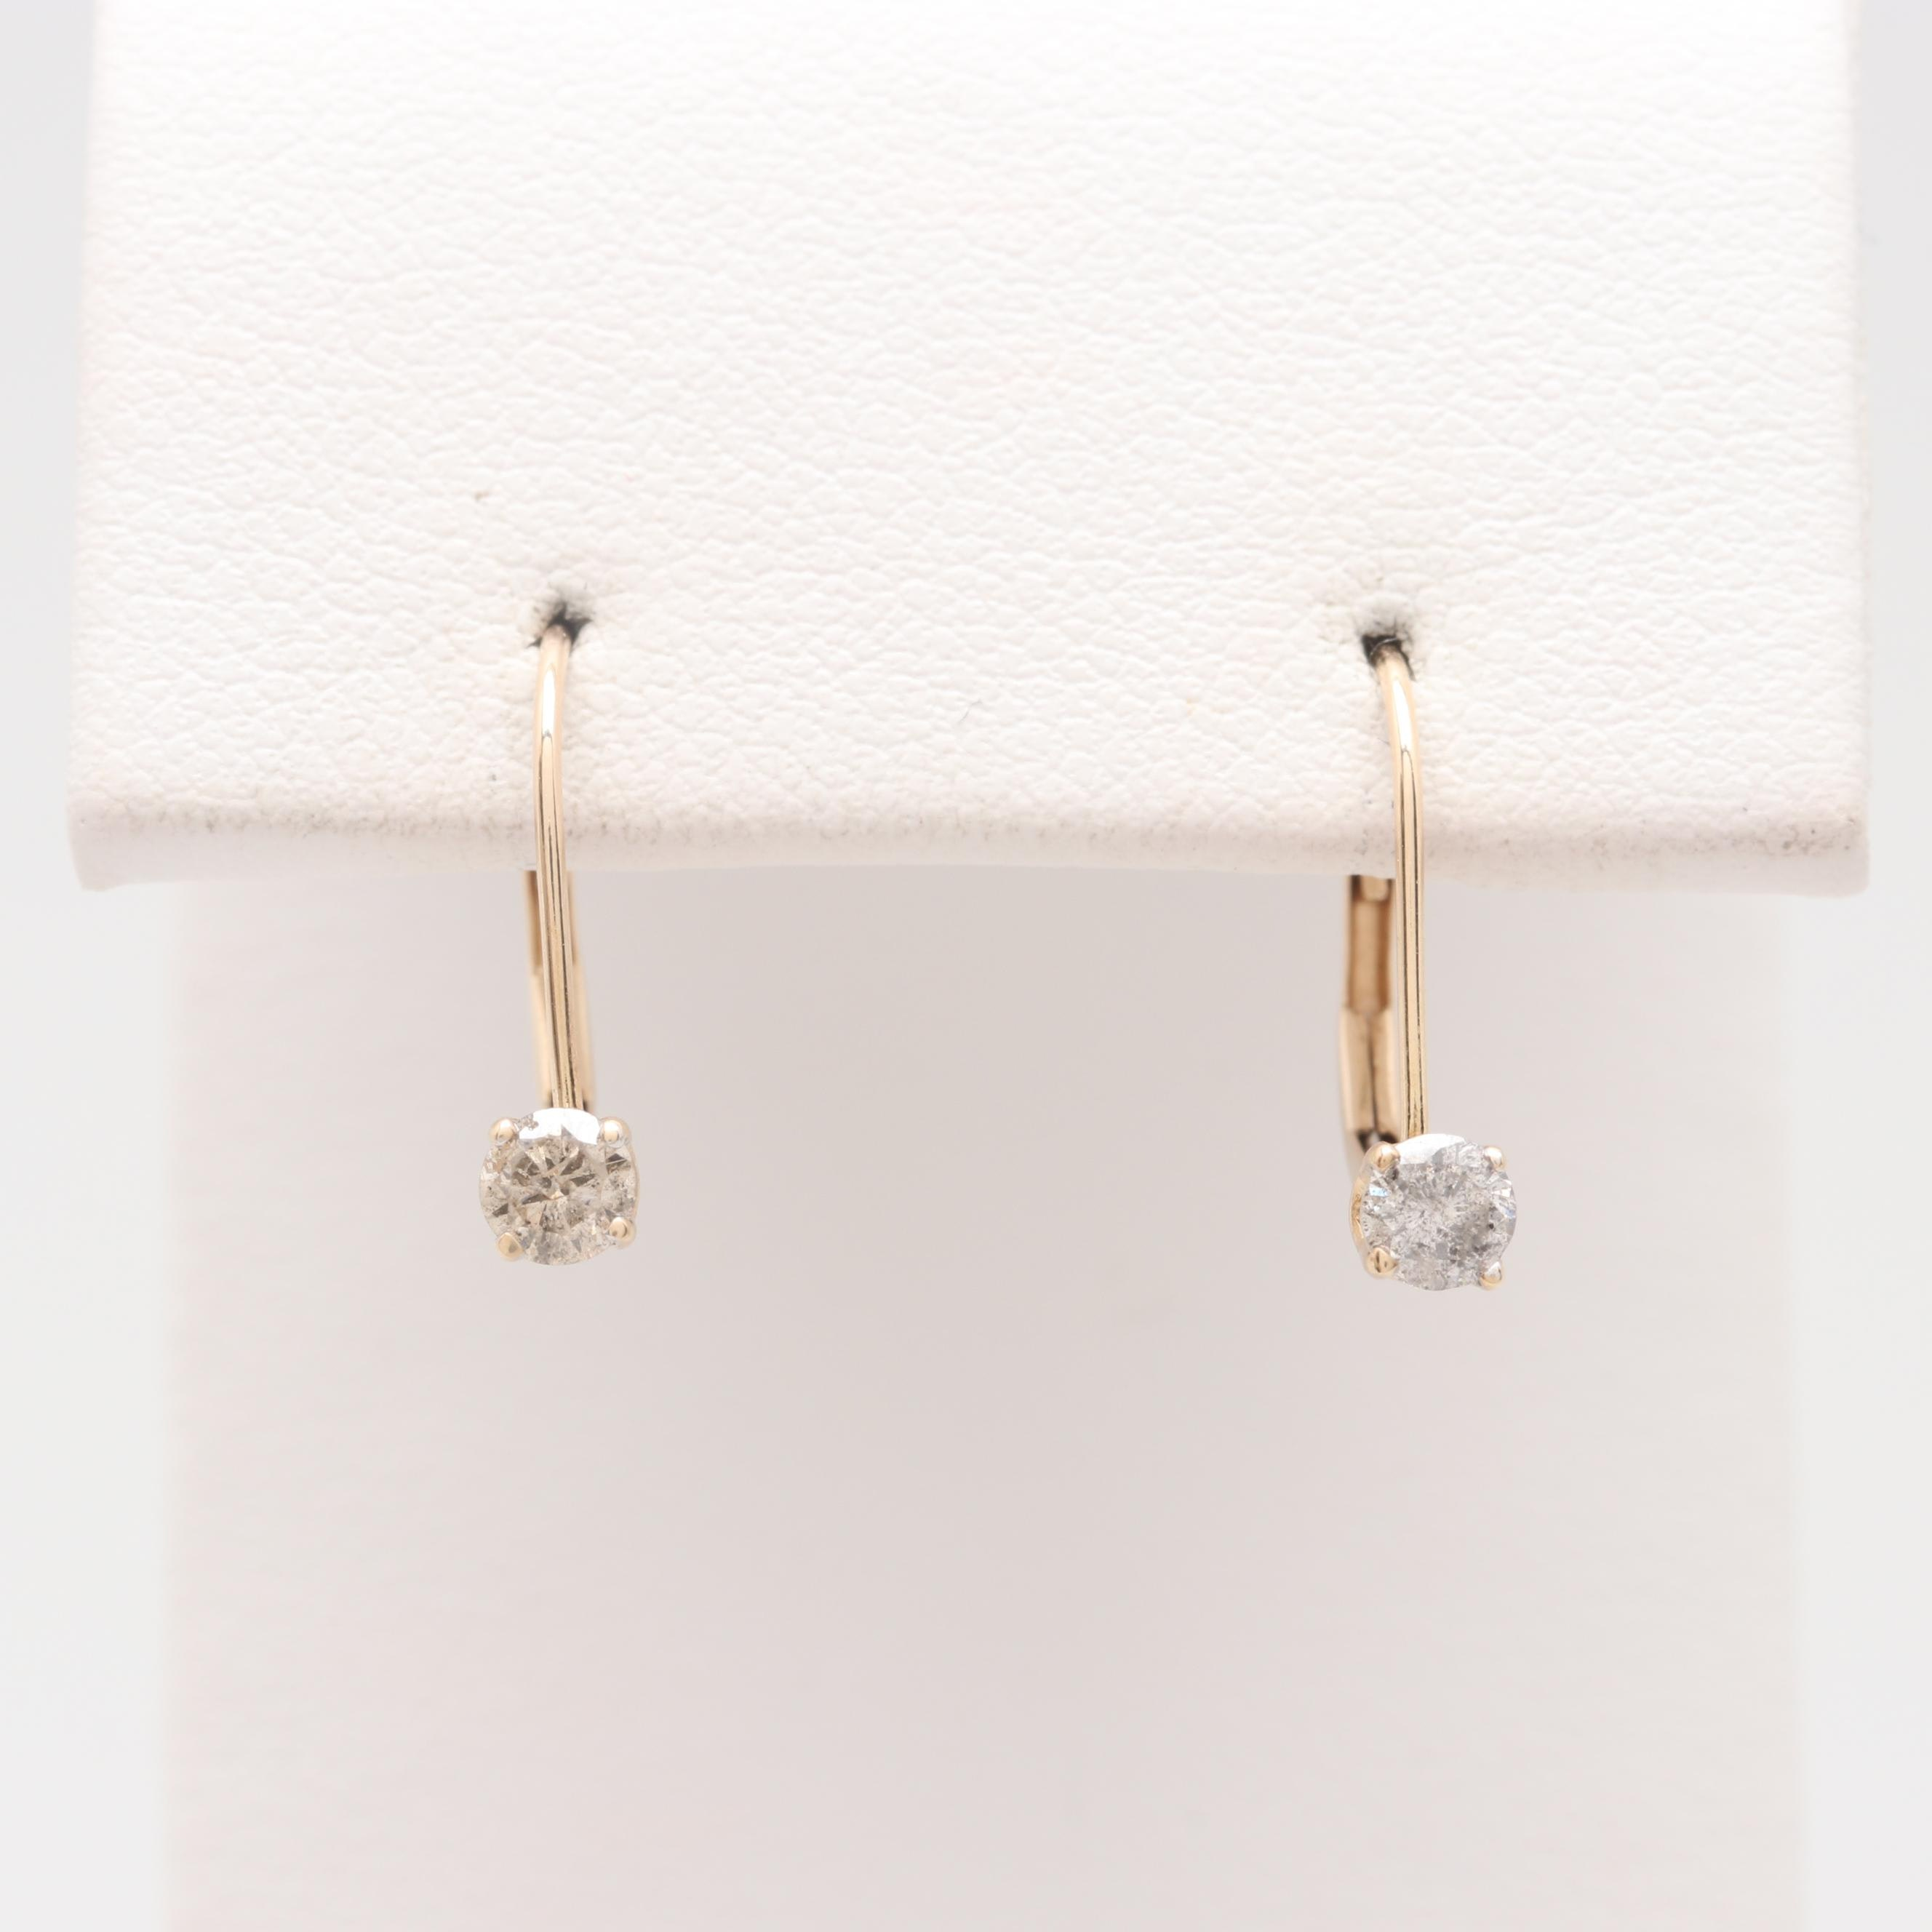 10K Yellow Gold Diamond Leverback Earrings